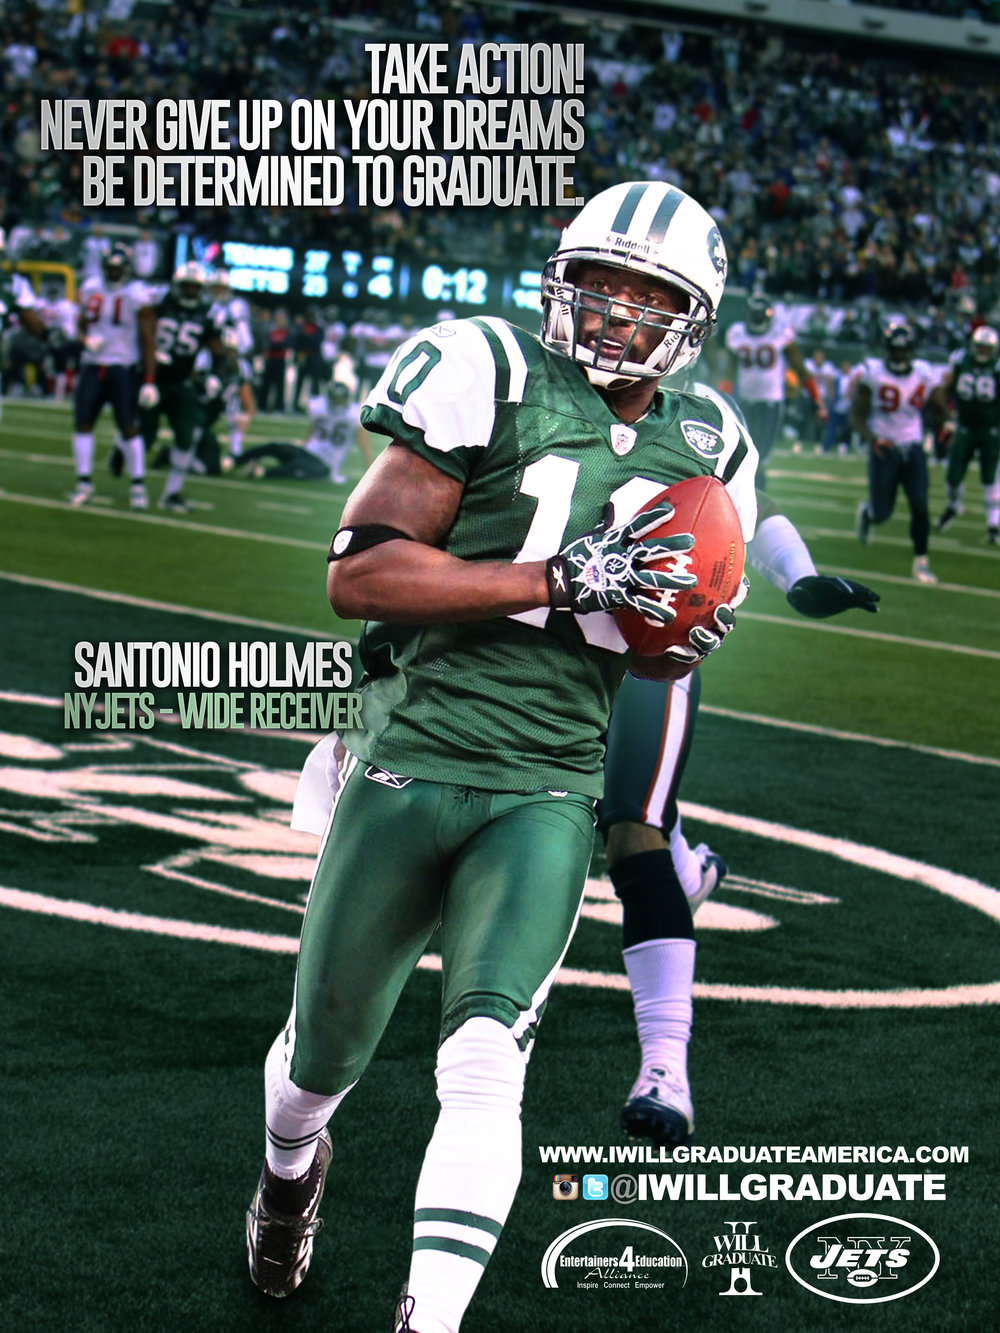 Former NY-JETS wide receiver Santonio Holmes Poster Campaign.